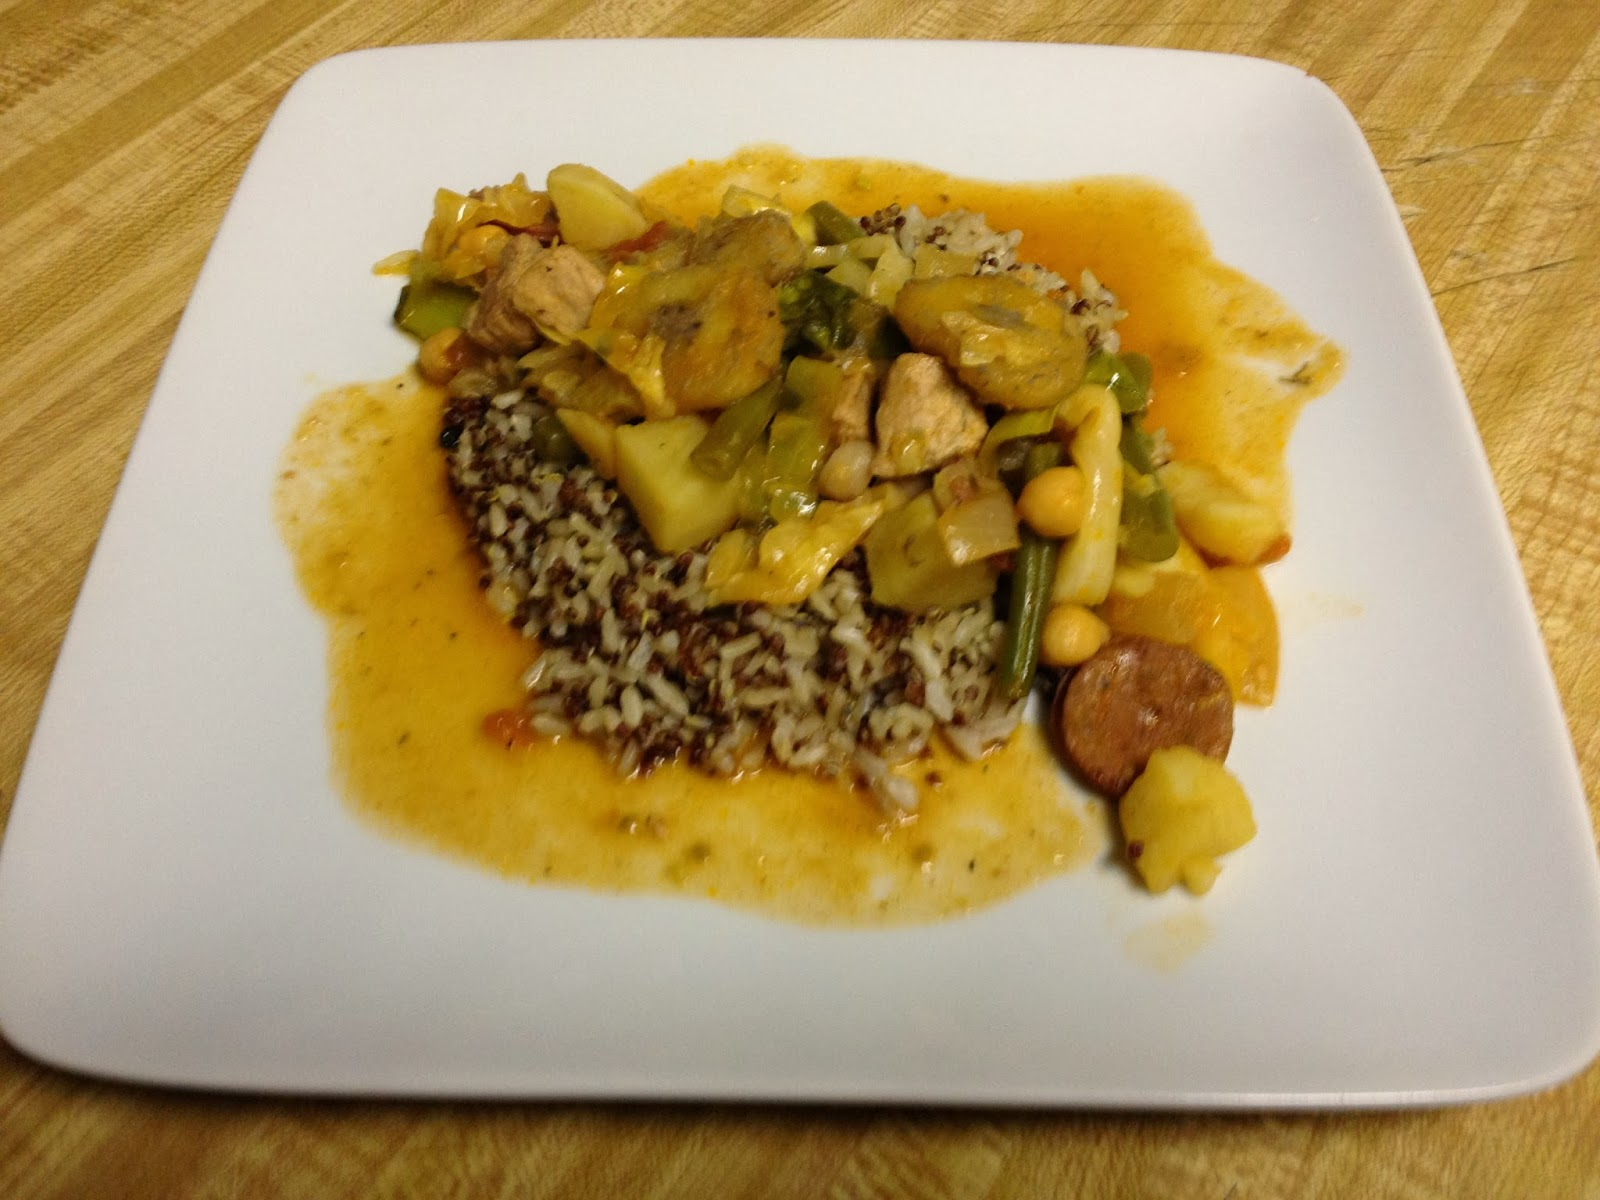 Puchero with elevated presentation